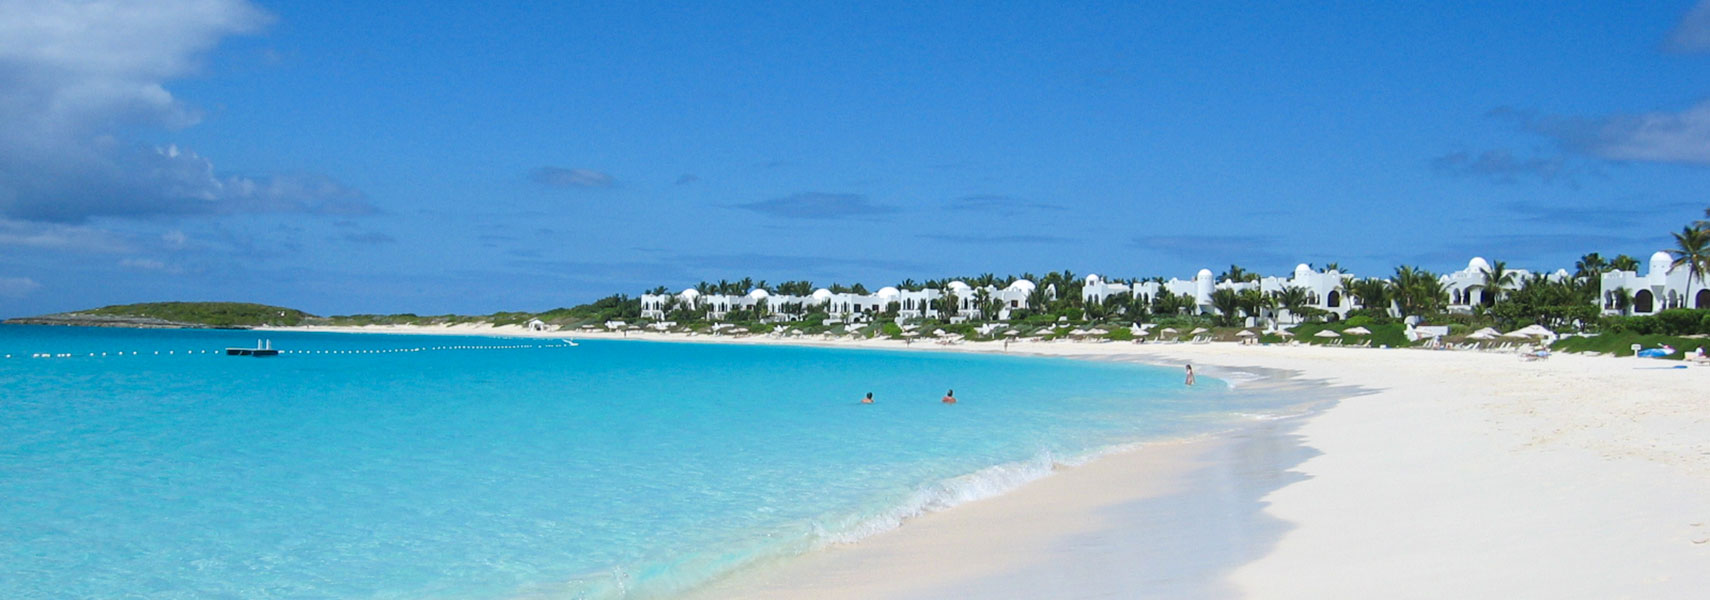 Beach at the Cap Juluca resort on Maundays Bay, Anguilla